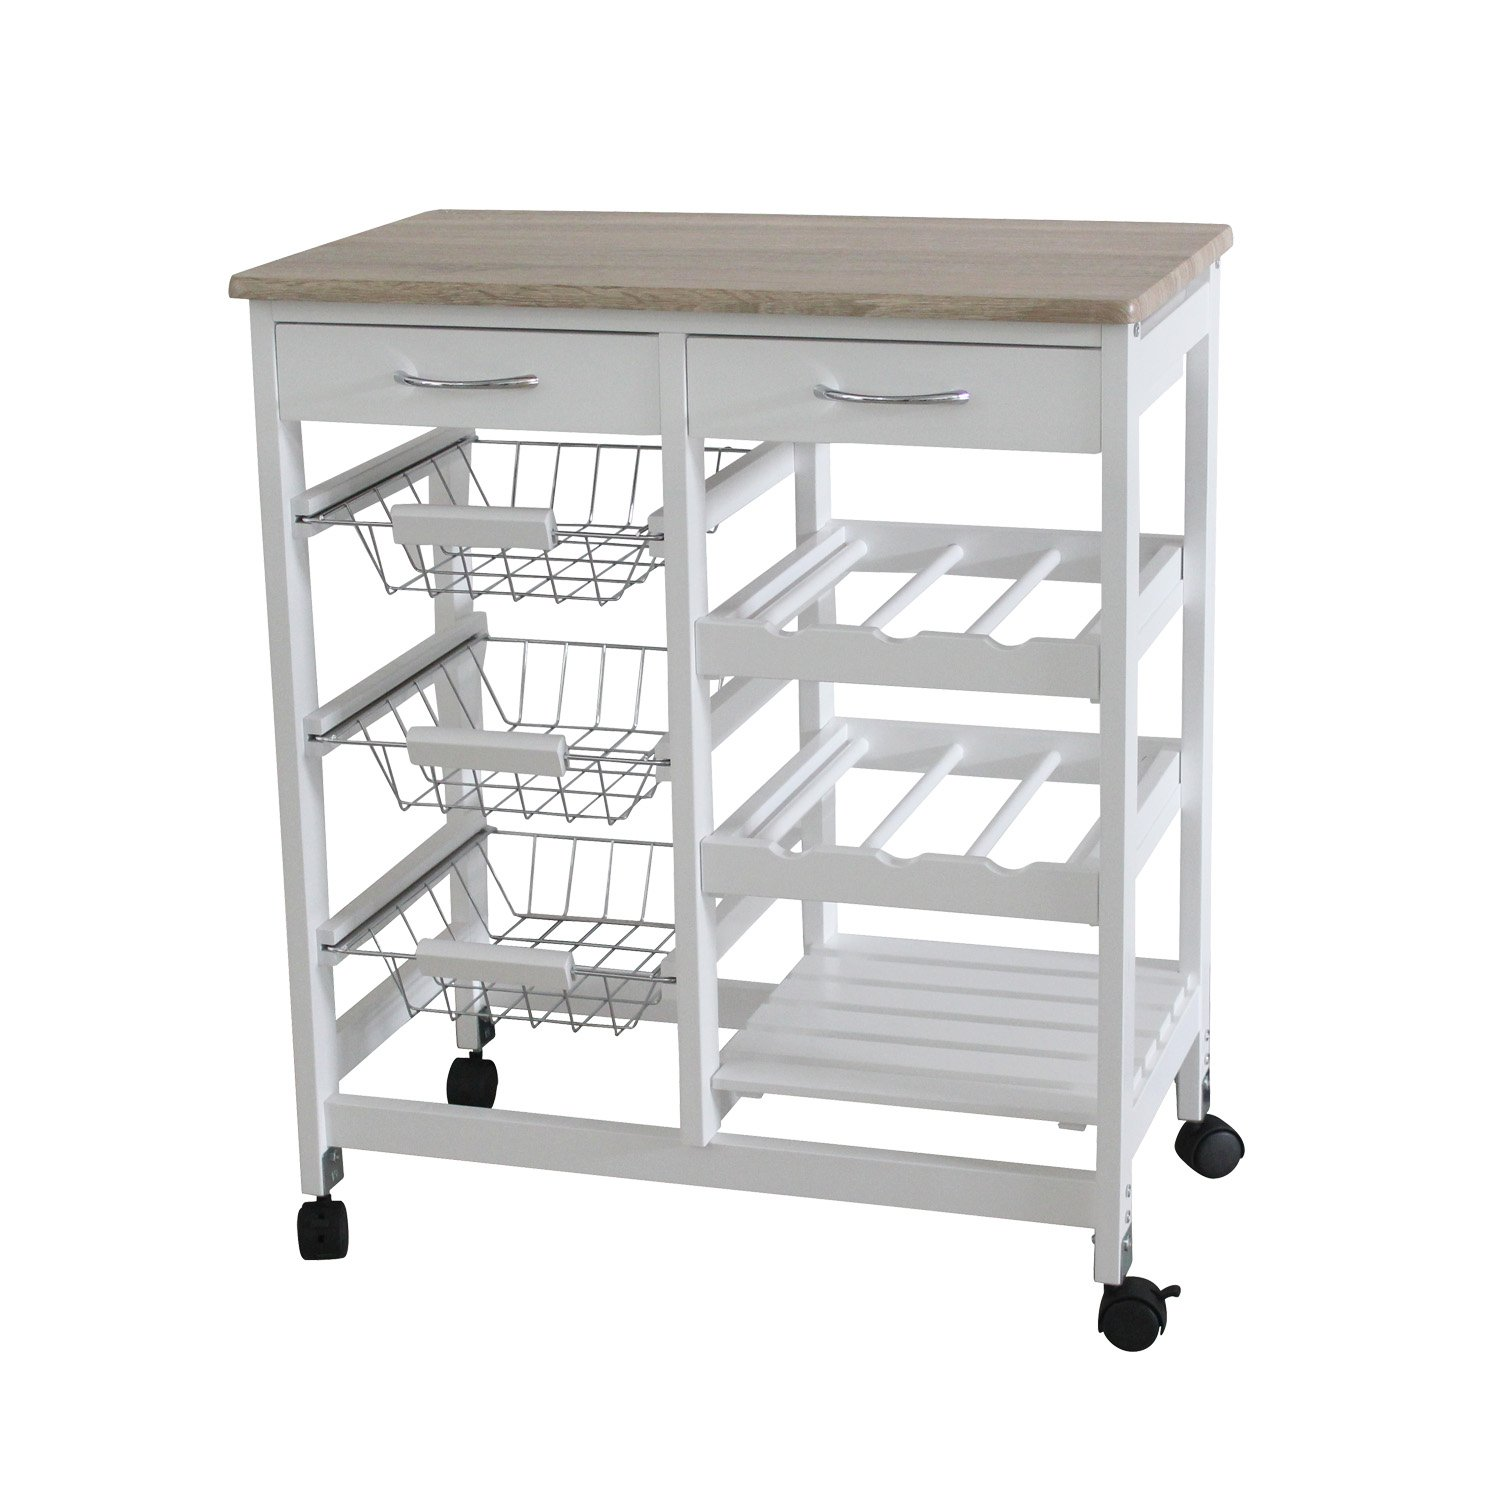 Traveller Location: Home Basics Portable Kitchen Storage Island Trolley Cart with 2  Drawers White and Oak: Home & Kitchen